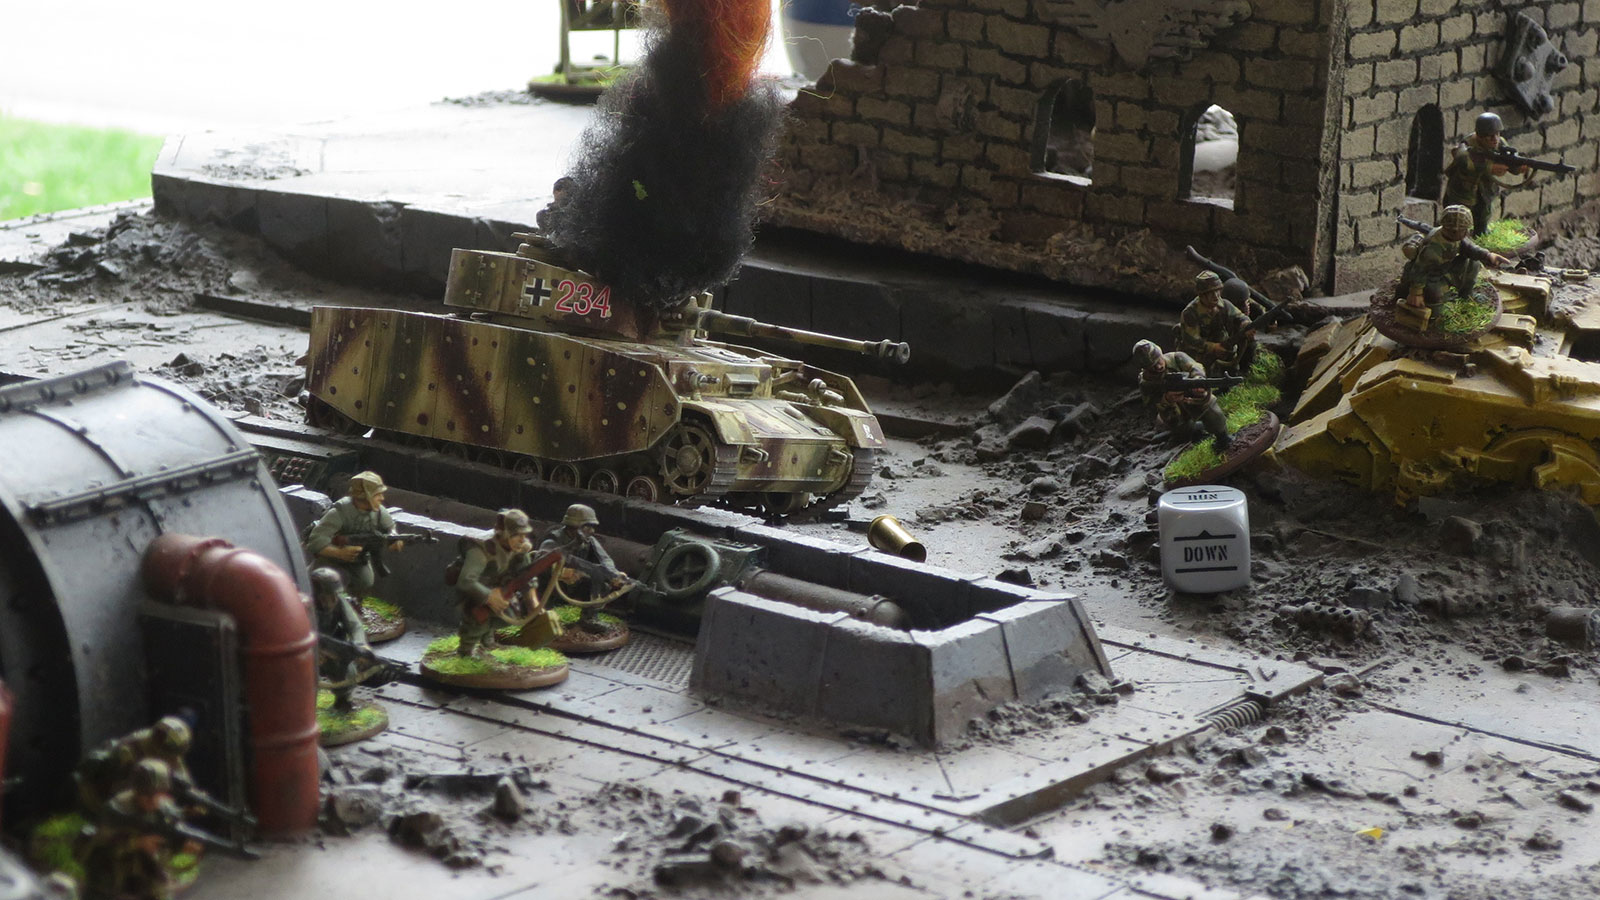 Getting Started with Wargaming